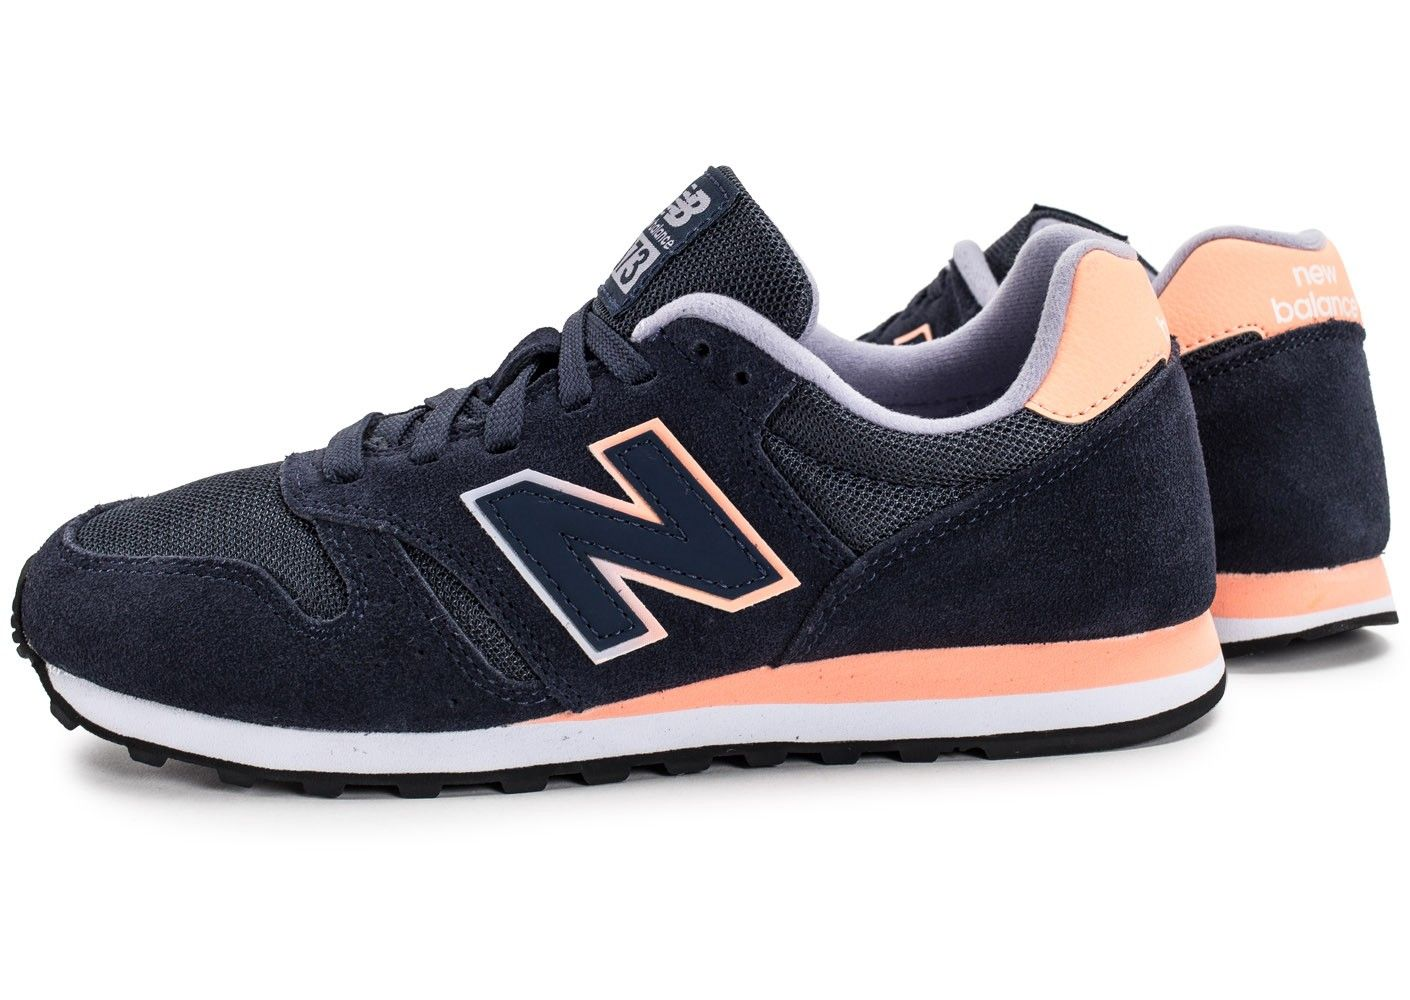 New Balance Wl373 chaussures